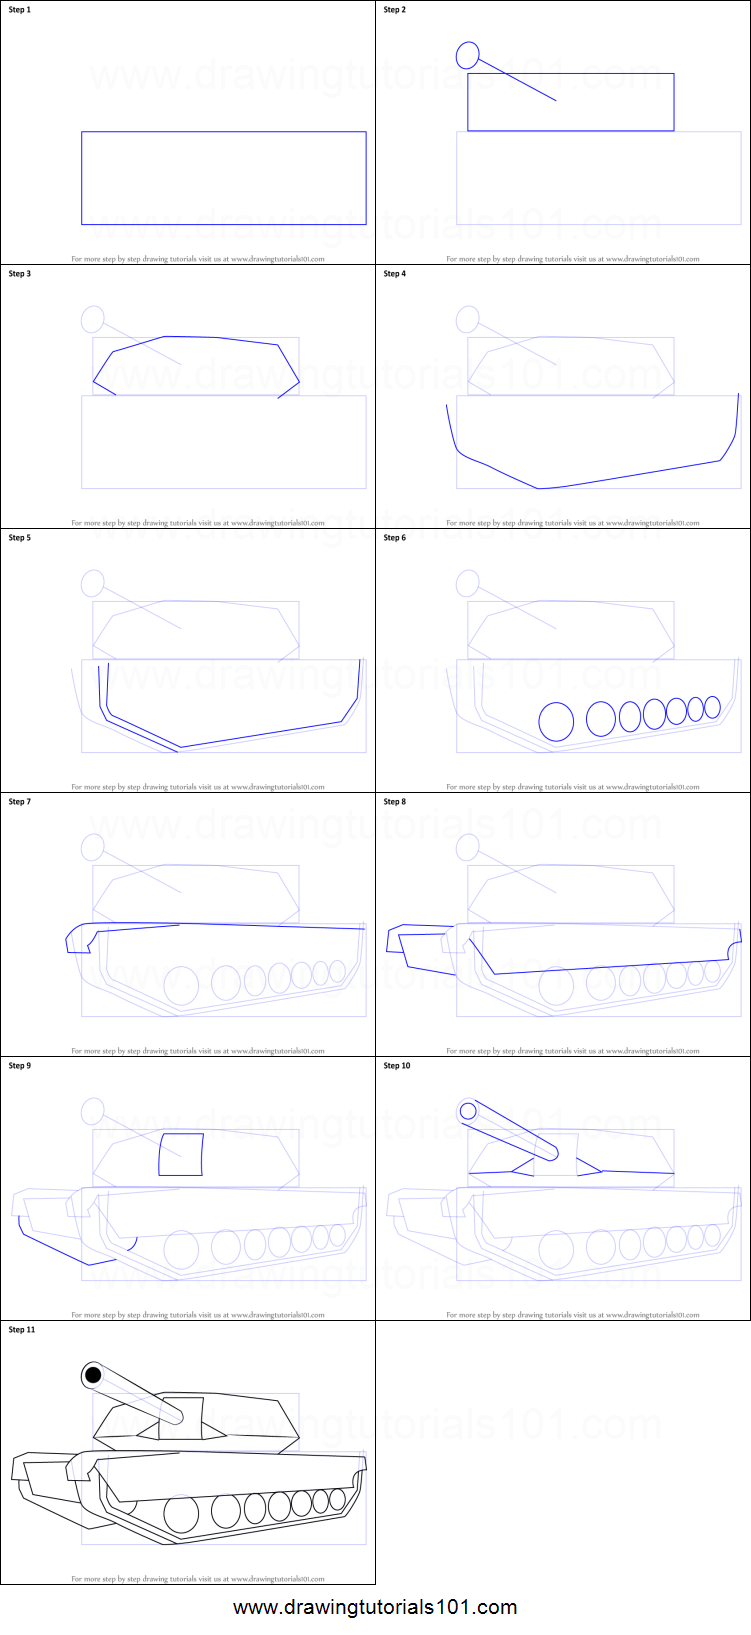 How To Draw A Tank Easy : Simple, Printable, Drawing, Sheet, DrawingTutorials101.com